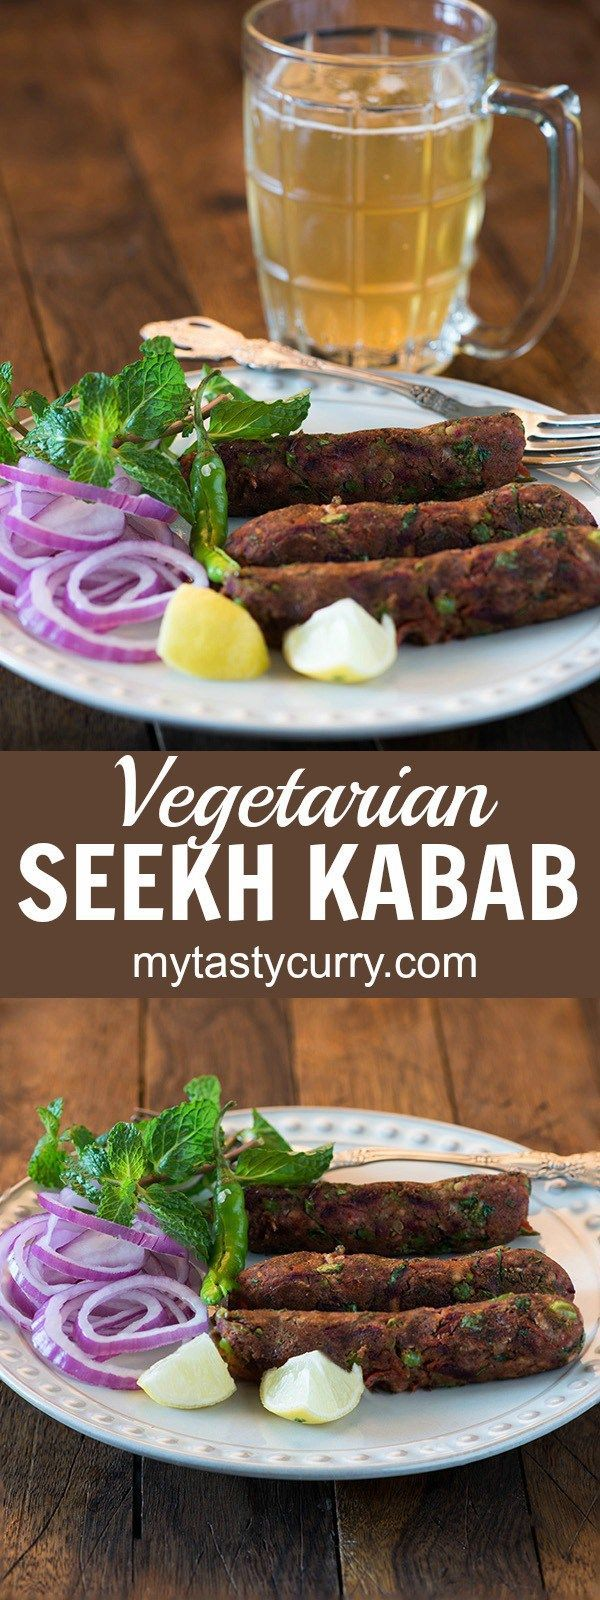 Vegetarian seekh kabab recipe veg seekh kabab indian recipe vegetarian seekh kabab is delicious and healthy indian starter recipe perfect for the party or as a snack easy and tasty recipe of vegetarian seekh kabab forumfinder Gallery